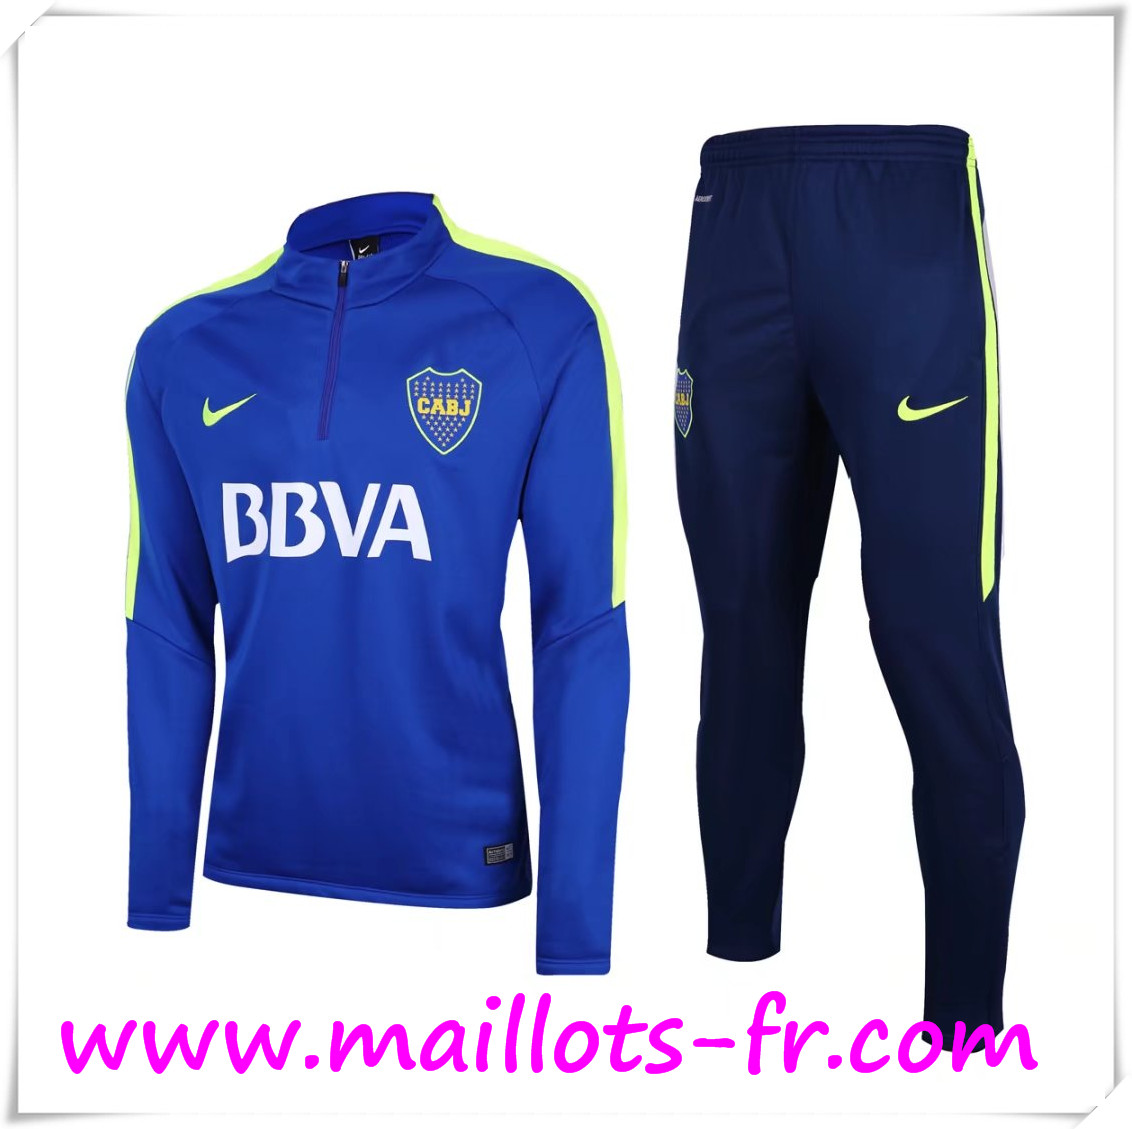 maillots-fr Survetement de Foot Boca Juniors Blue 2016 2017 Ensemble